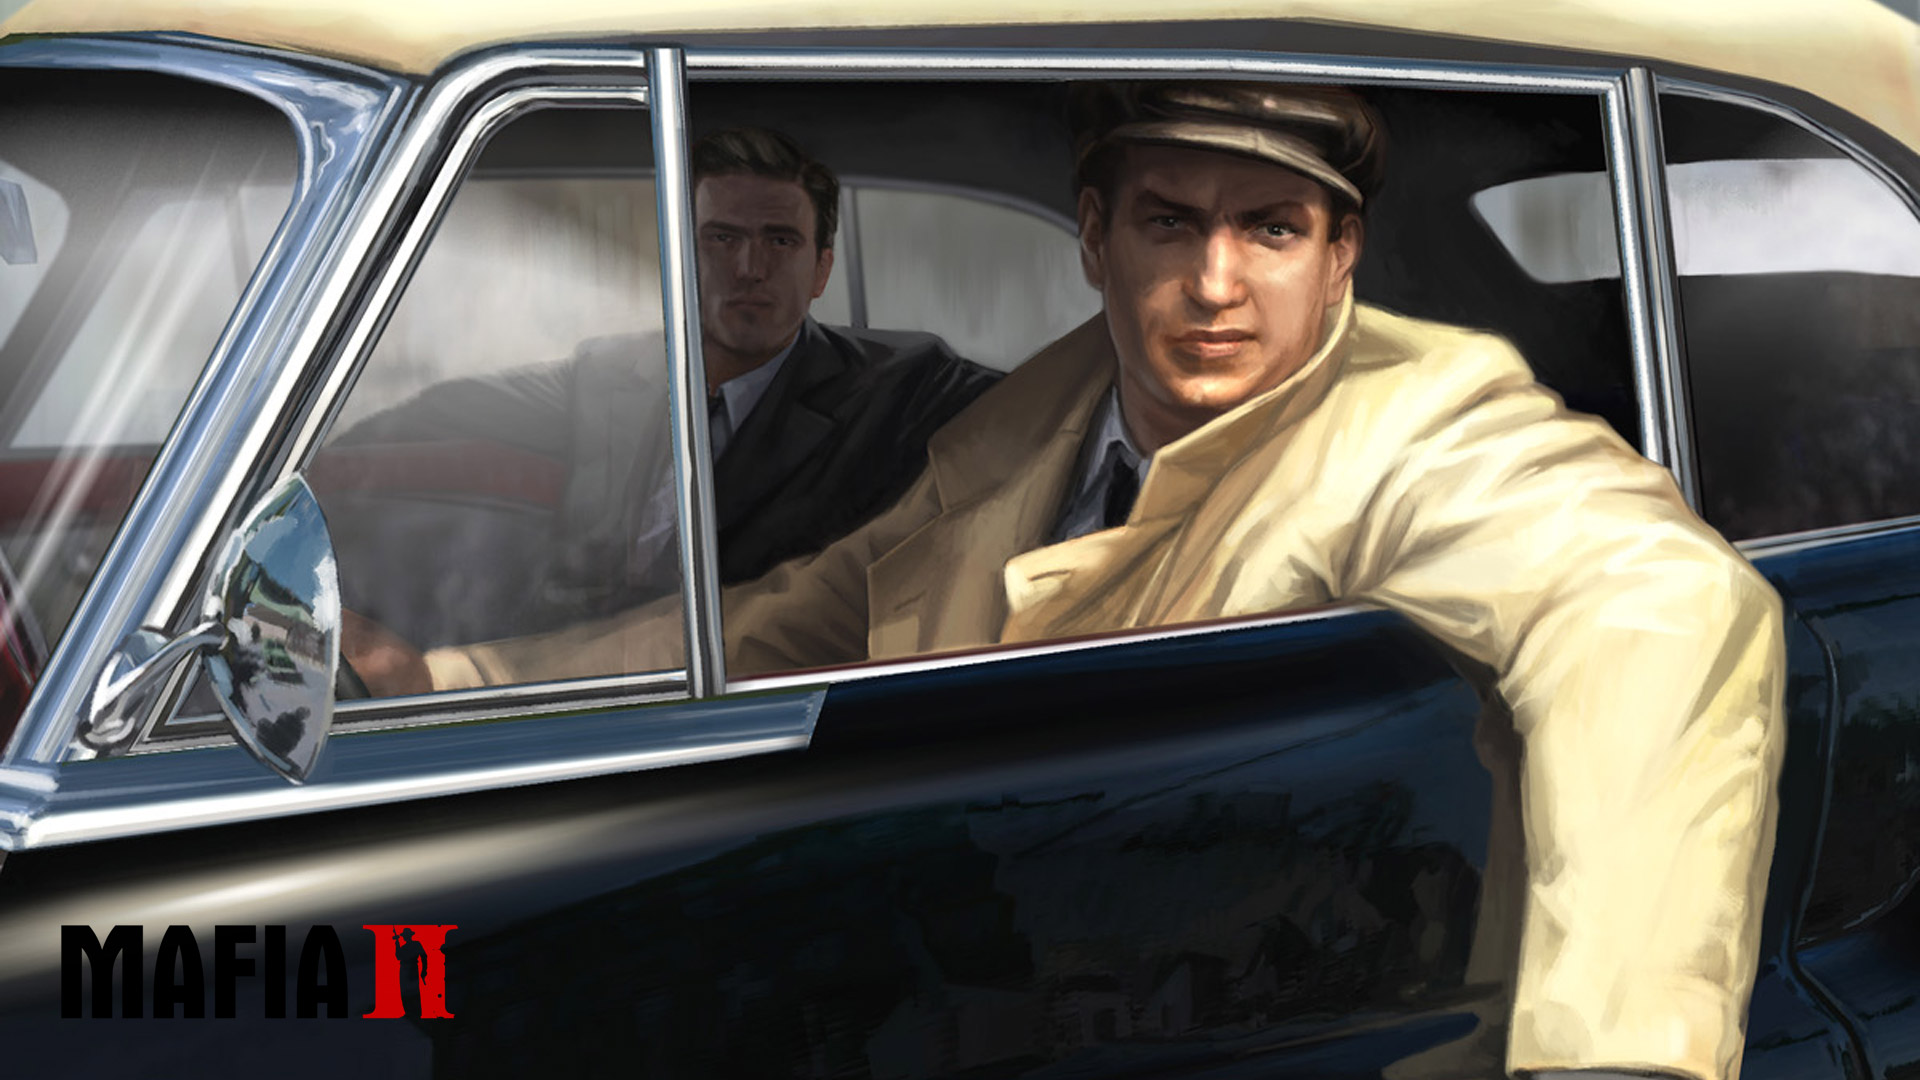 Mafia 2 wallpaper 1